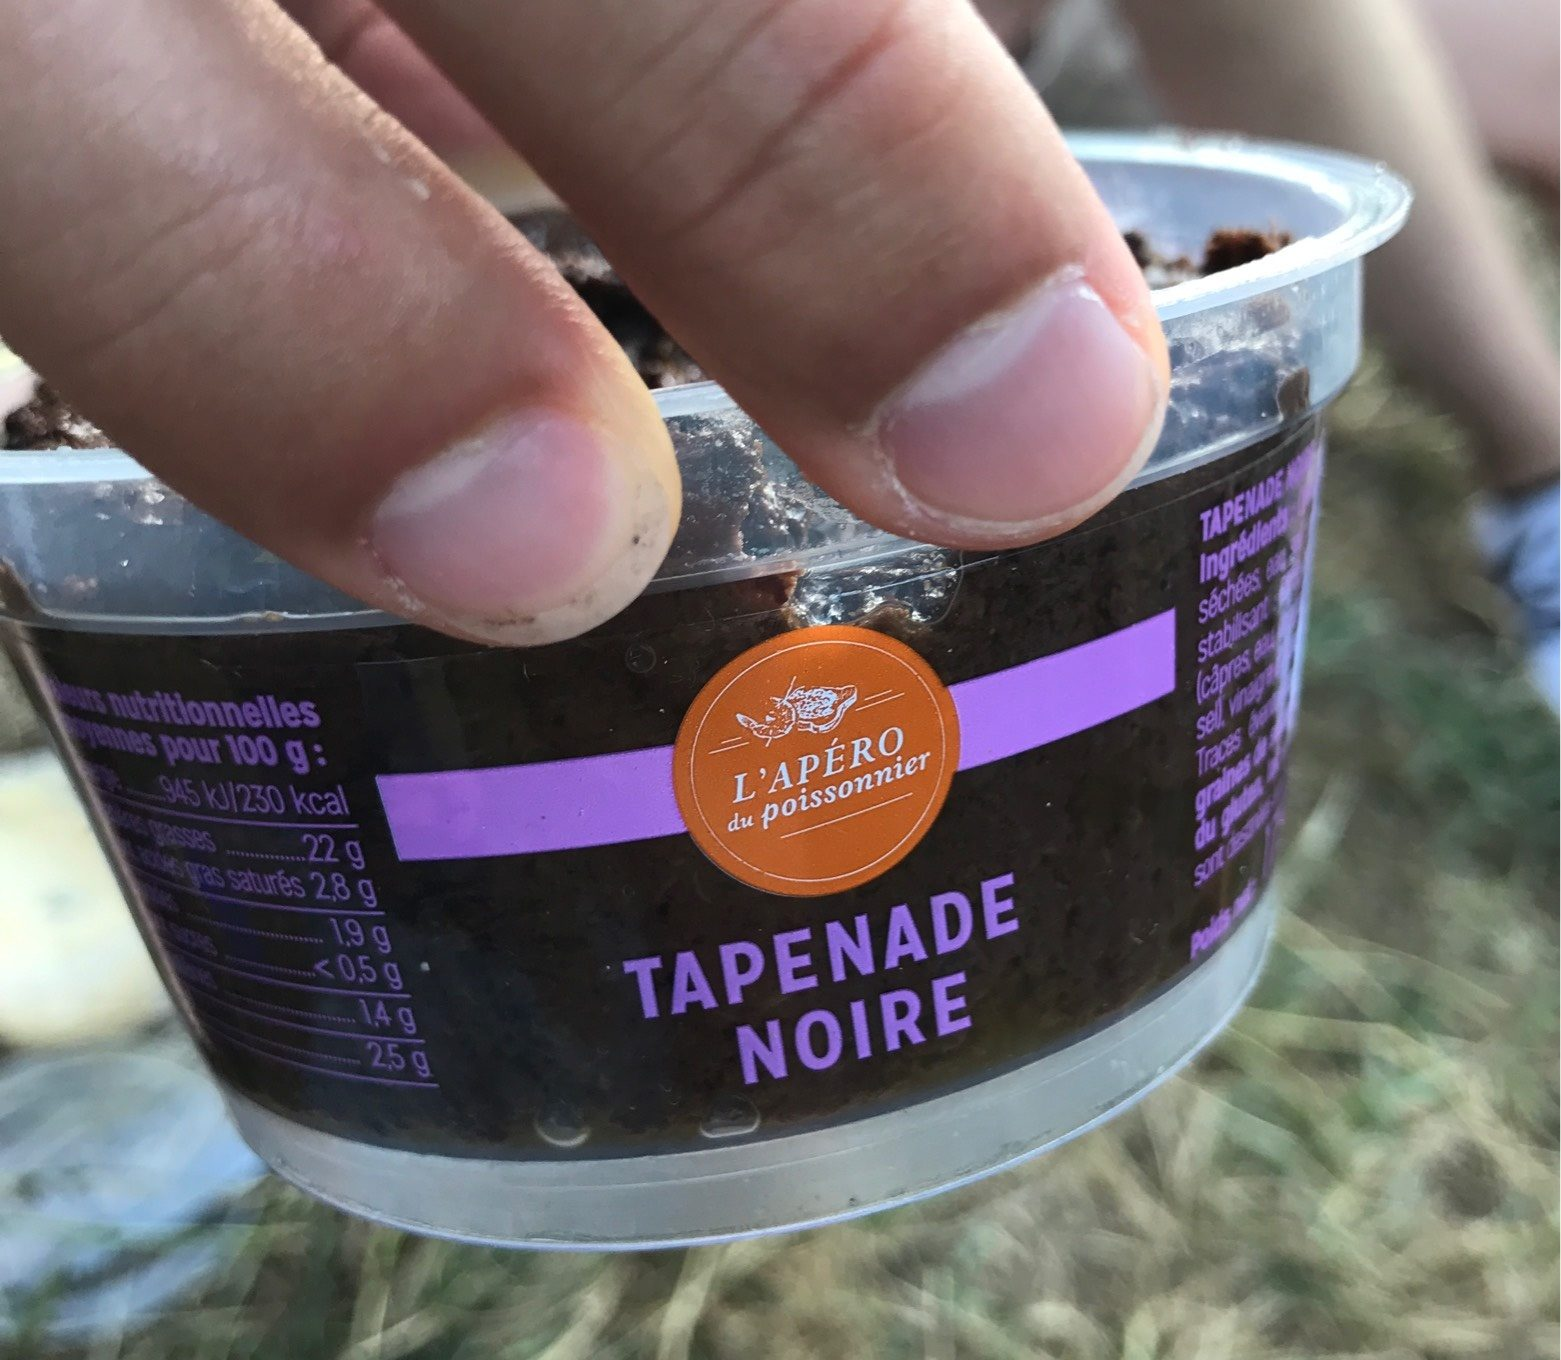 Tapenade noire - Product